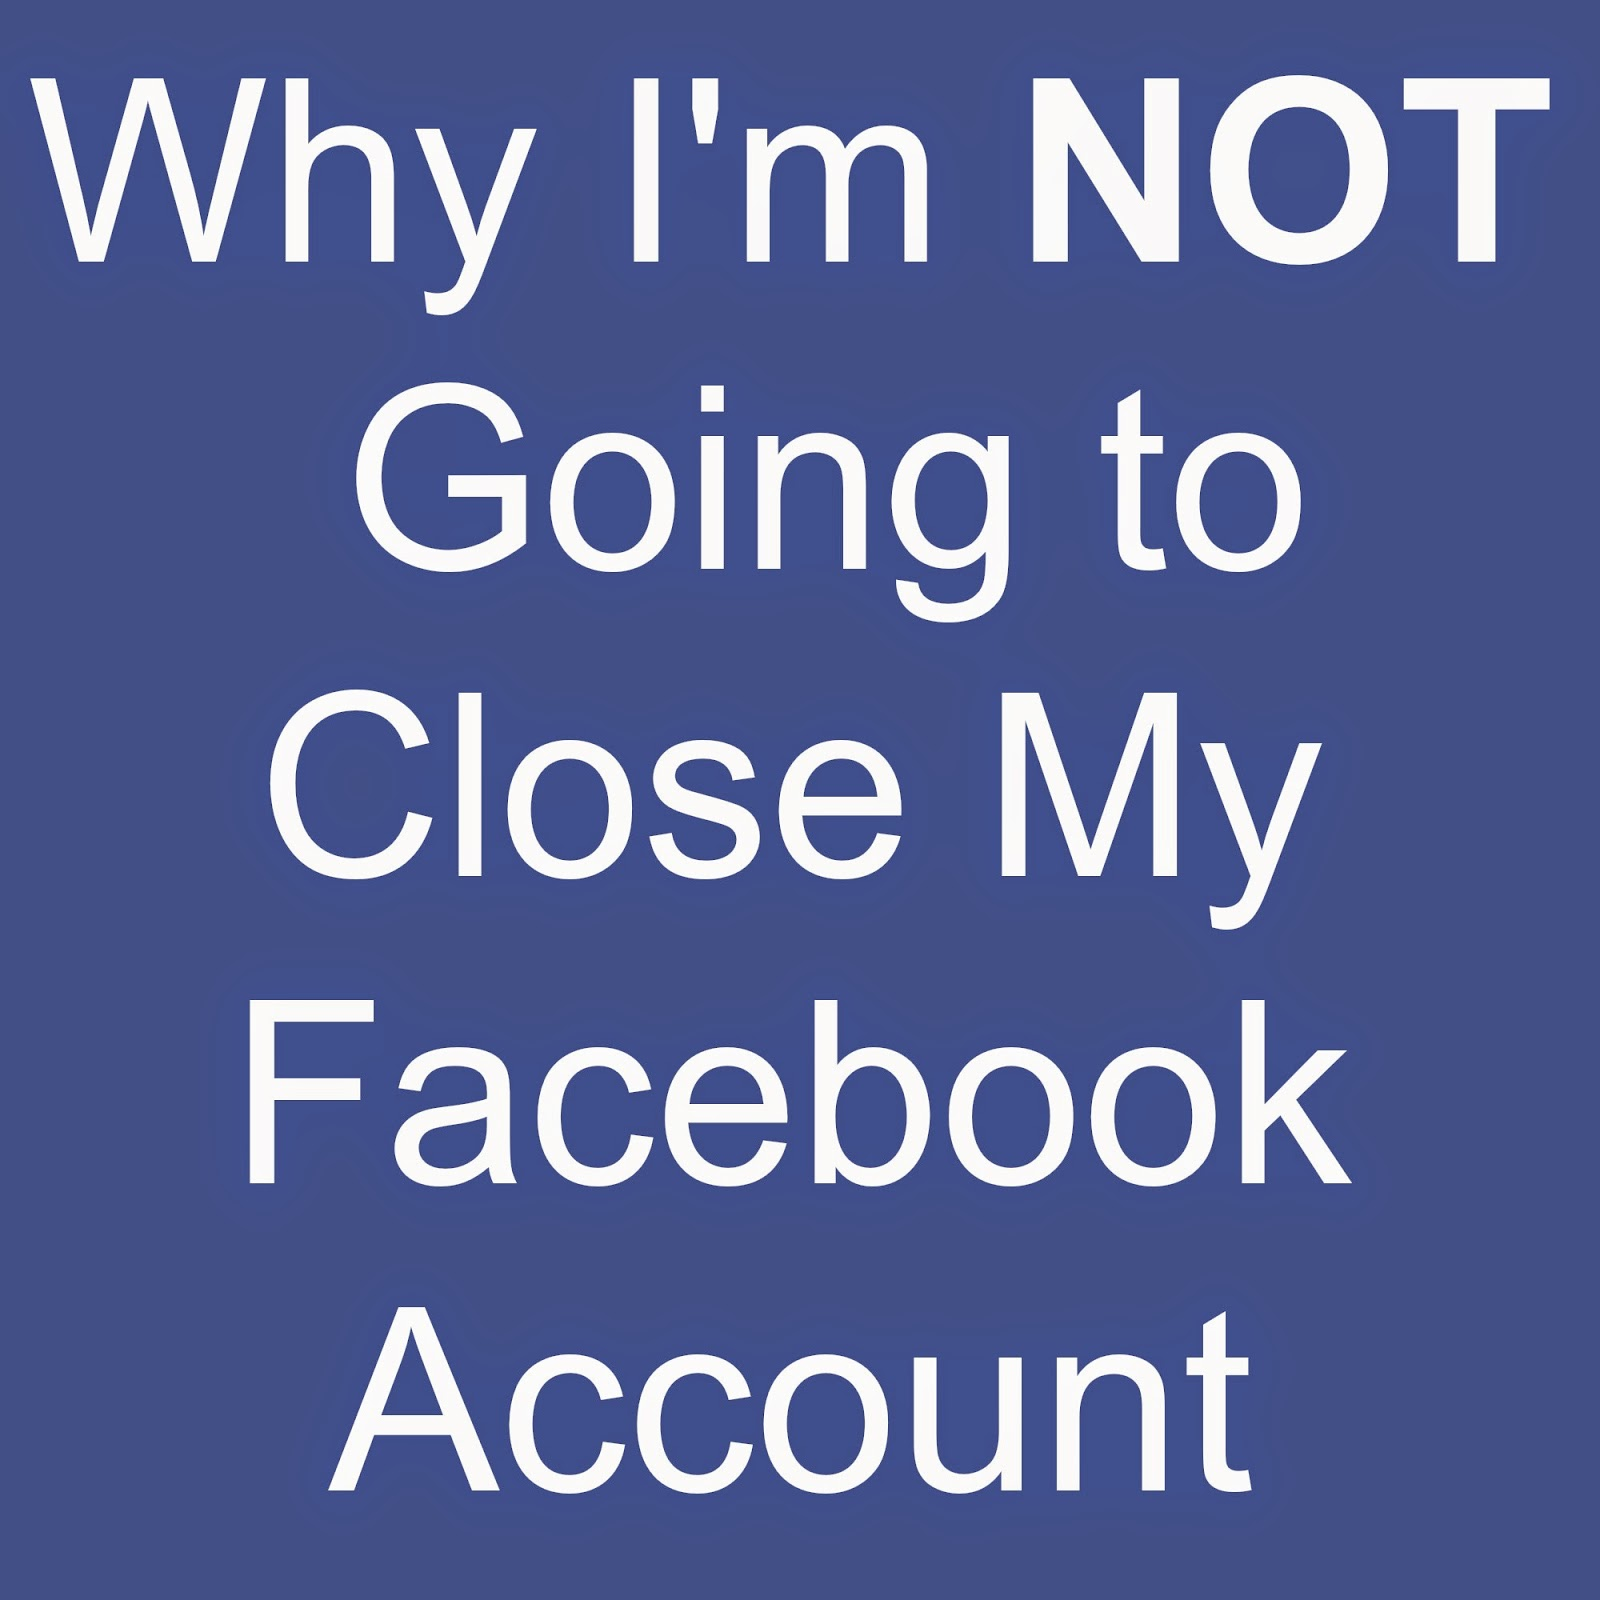 How do i close my face book account